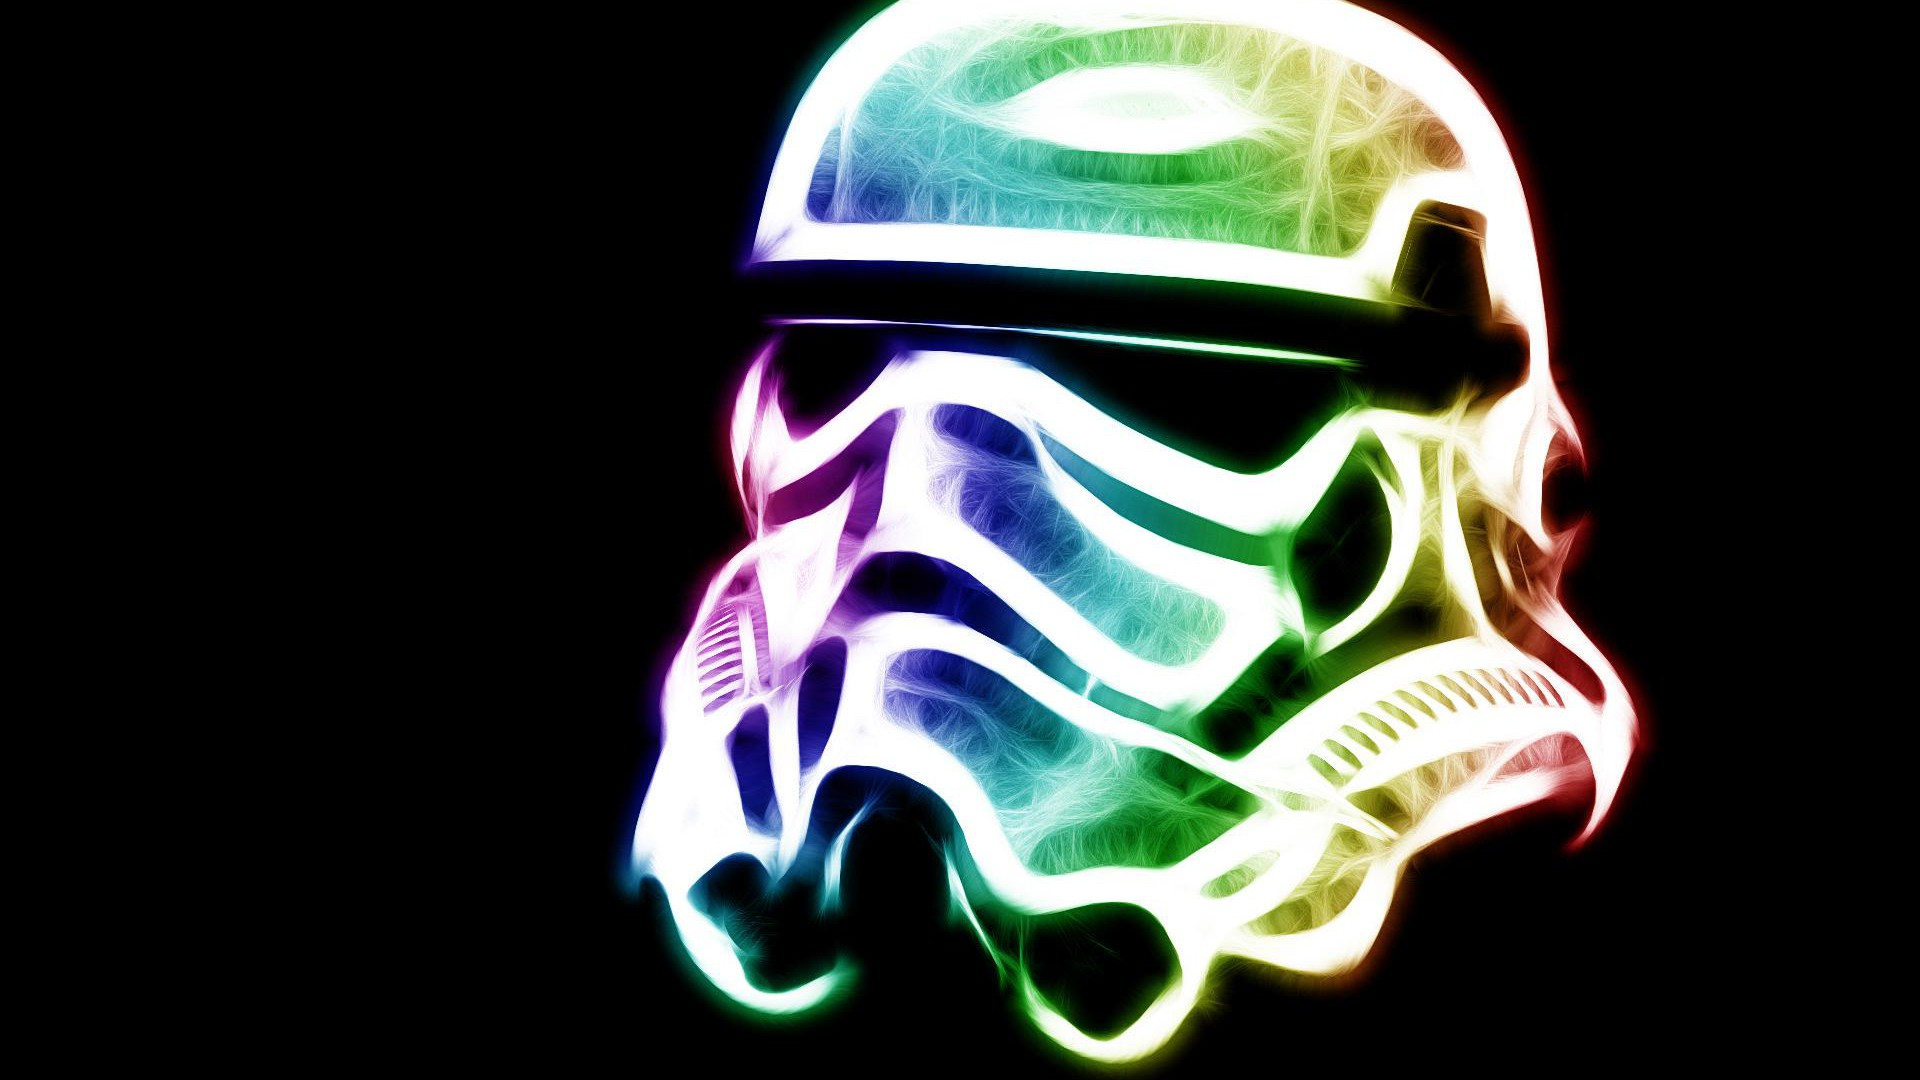 Funny Stormtrooper Wallpaper Star Wars Jpg 1920x1080PX War 1920x1080